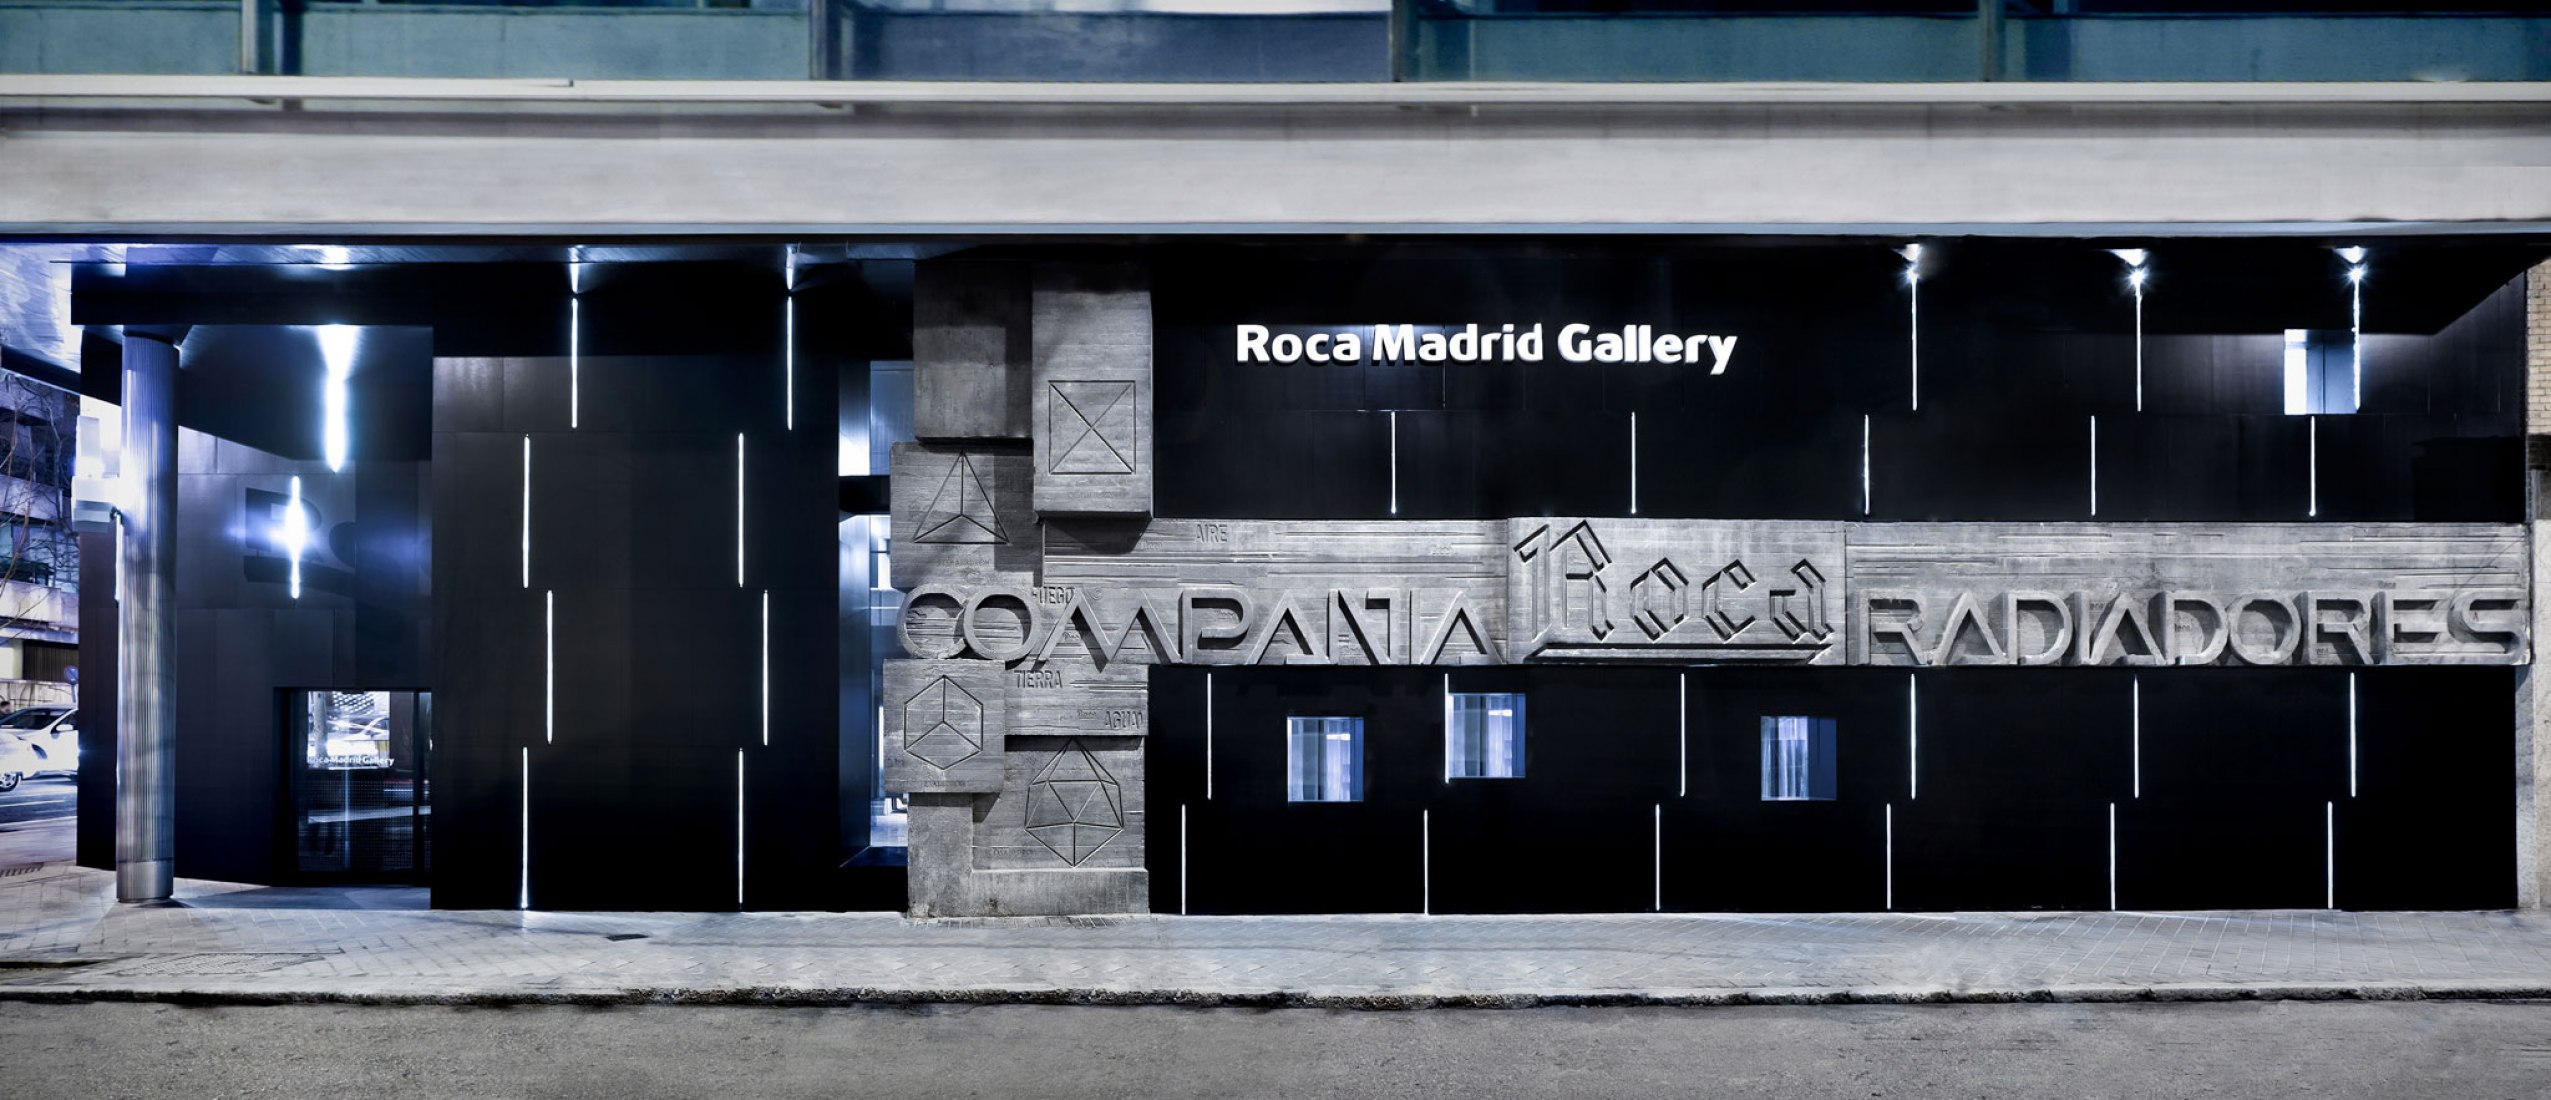 Showroom Roca Madrid Gallery by Estudio Lamela. Photograph by Jose Parreño.